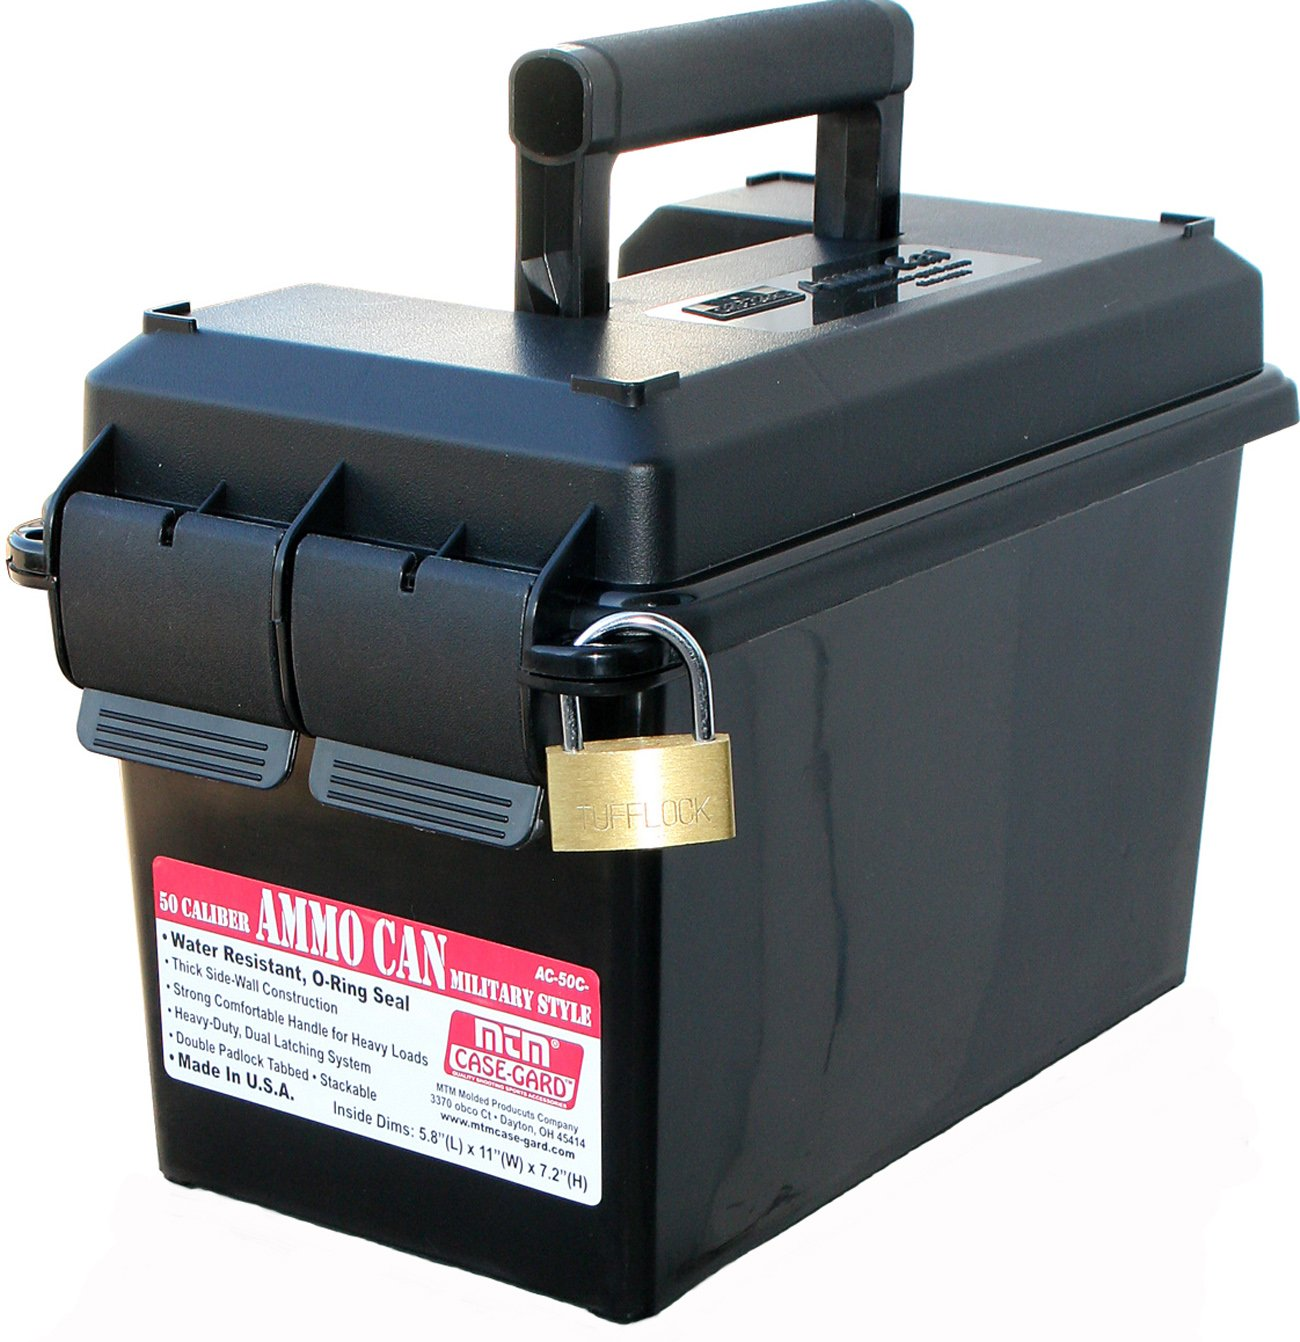 MTM 50 Caliber Ammo Can (Black)$7.29